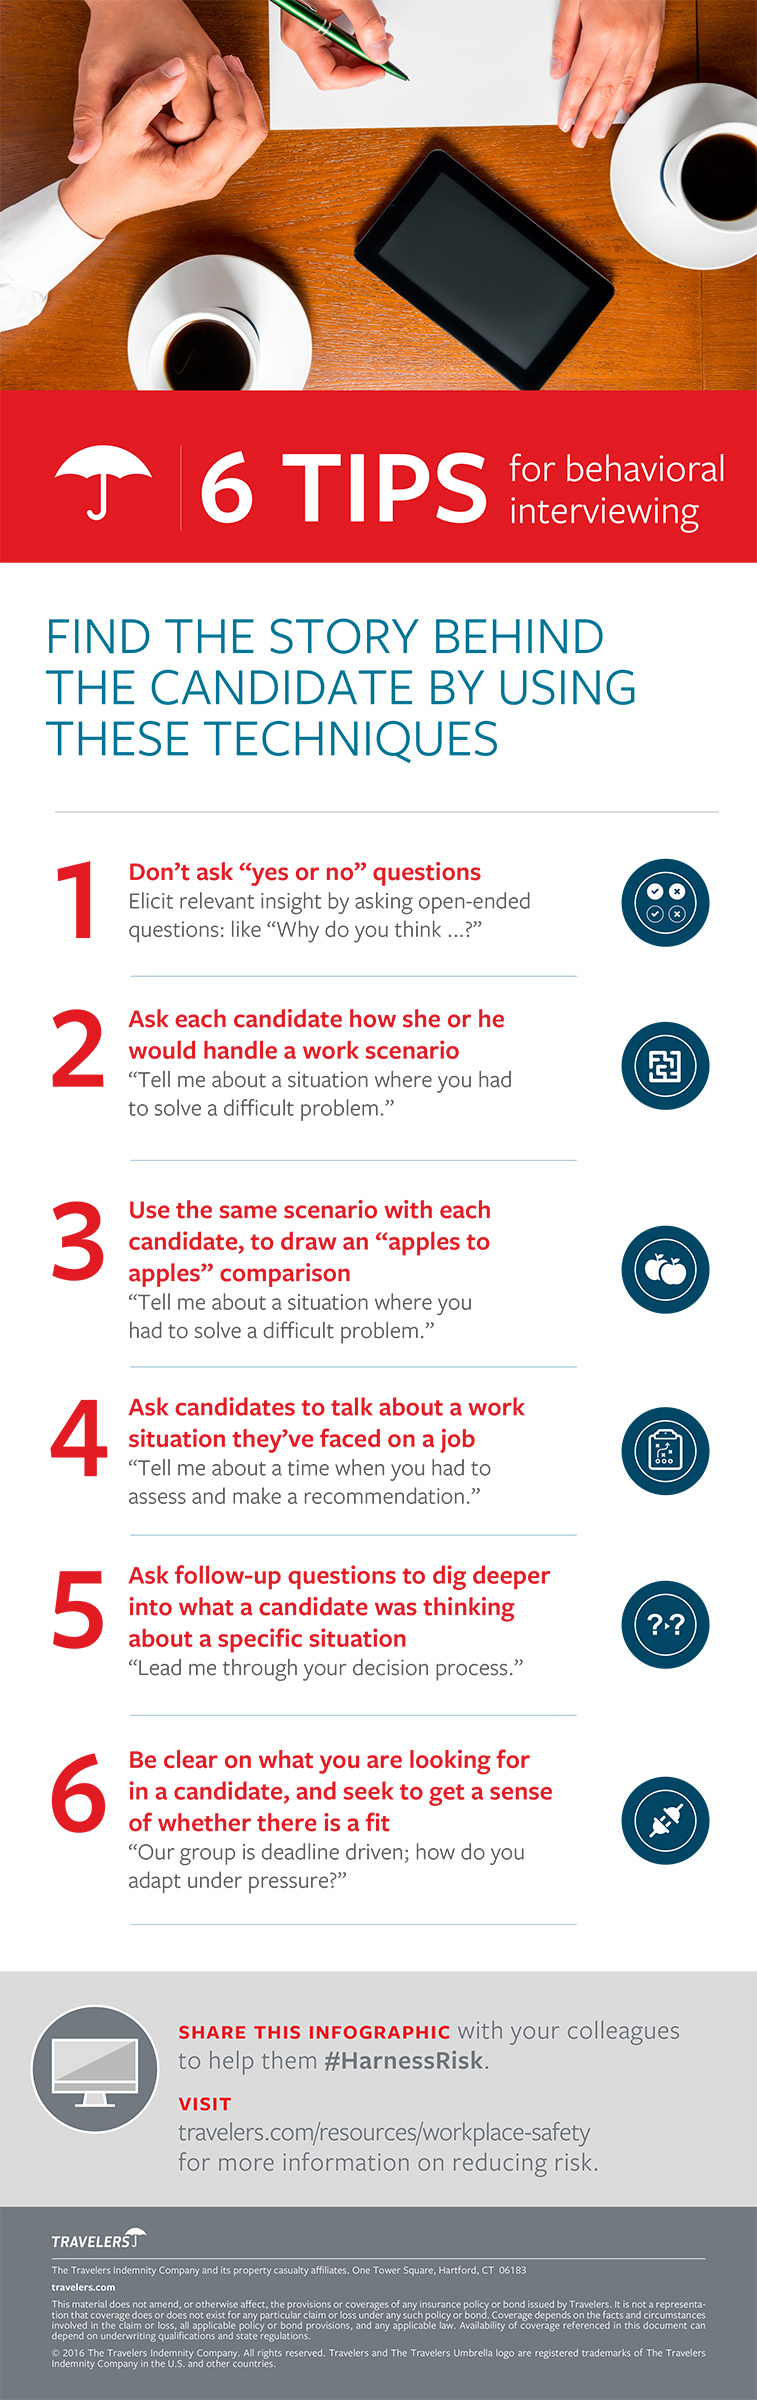 6 Behavioral Interviewing Tips Infographic